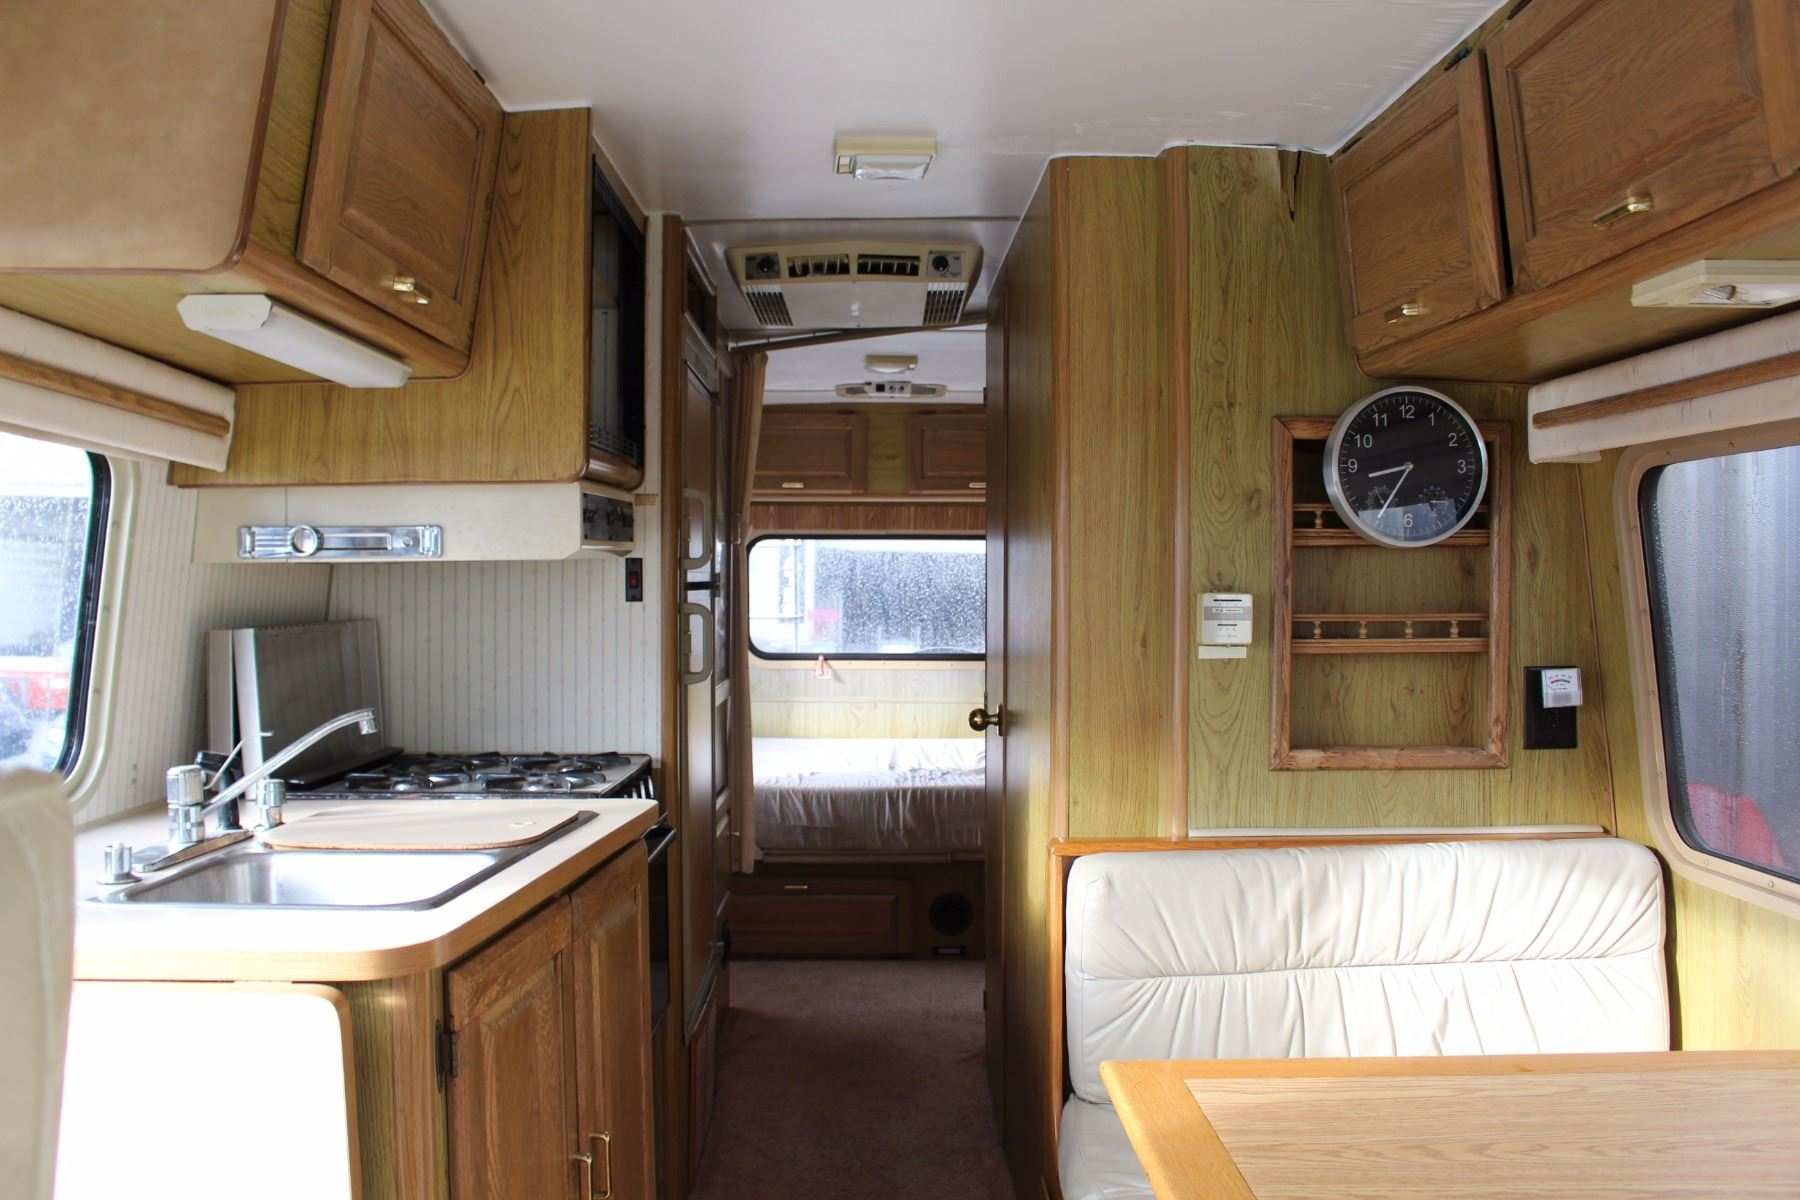 1988 ITASCA WINDCRUISER SPRINT MOTOR HOME, WHITE, 26 FT, 70628 KMS